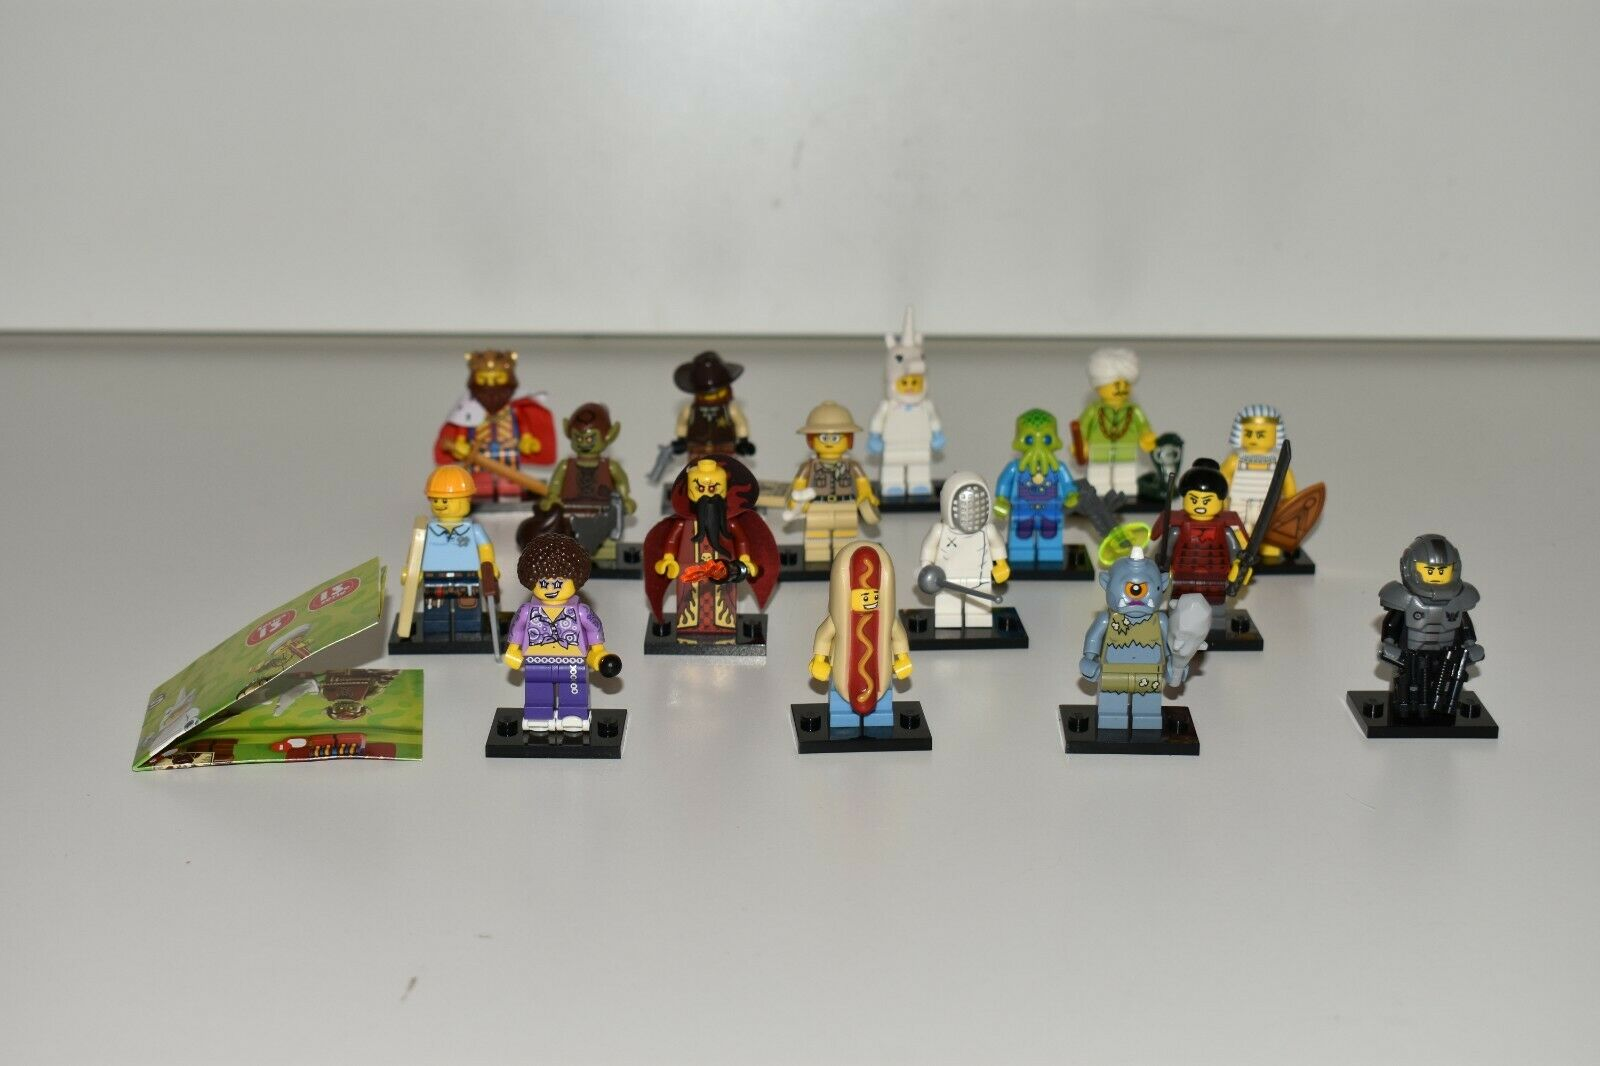 Lego Minifigure serie 13 -71008- Complete Set with 16 inserts and stands